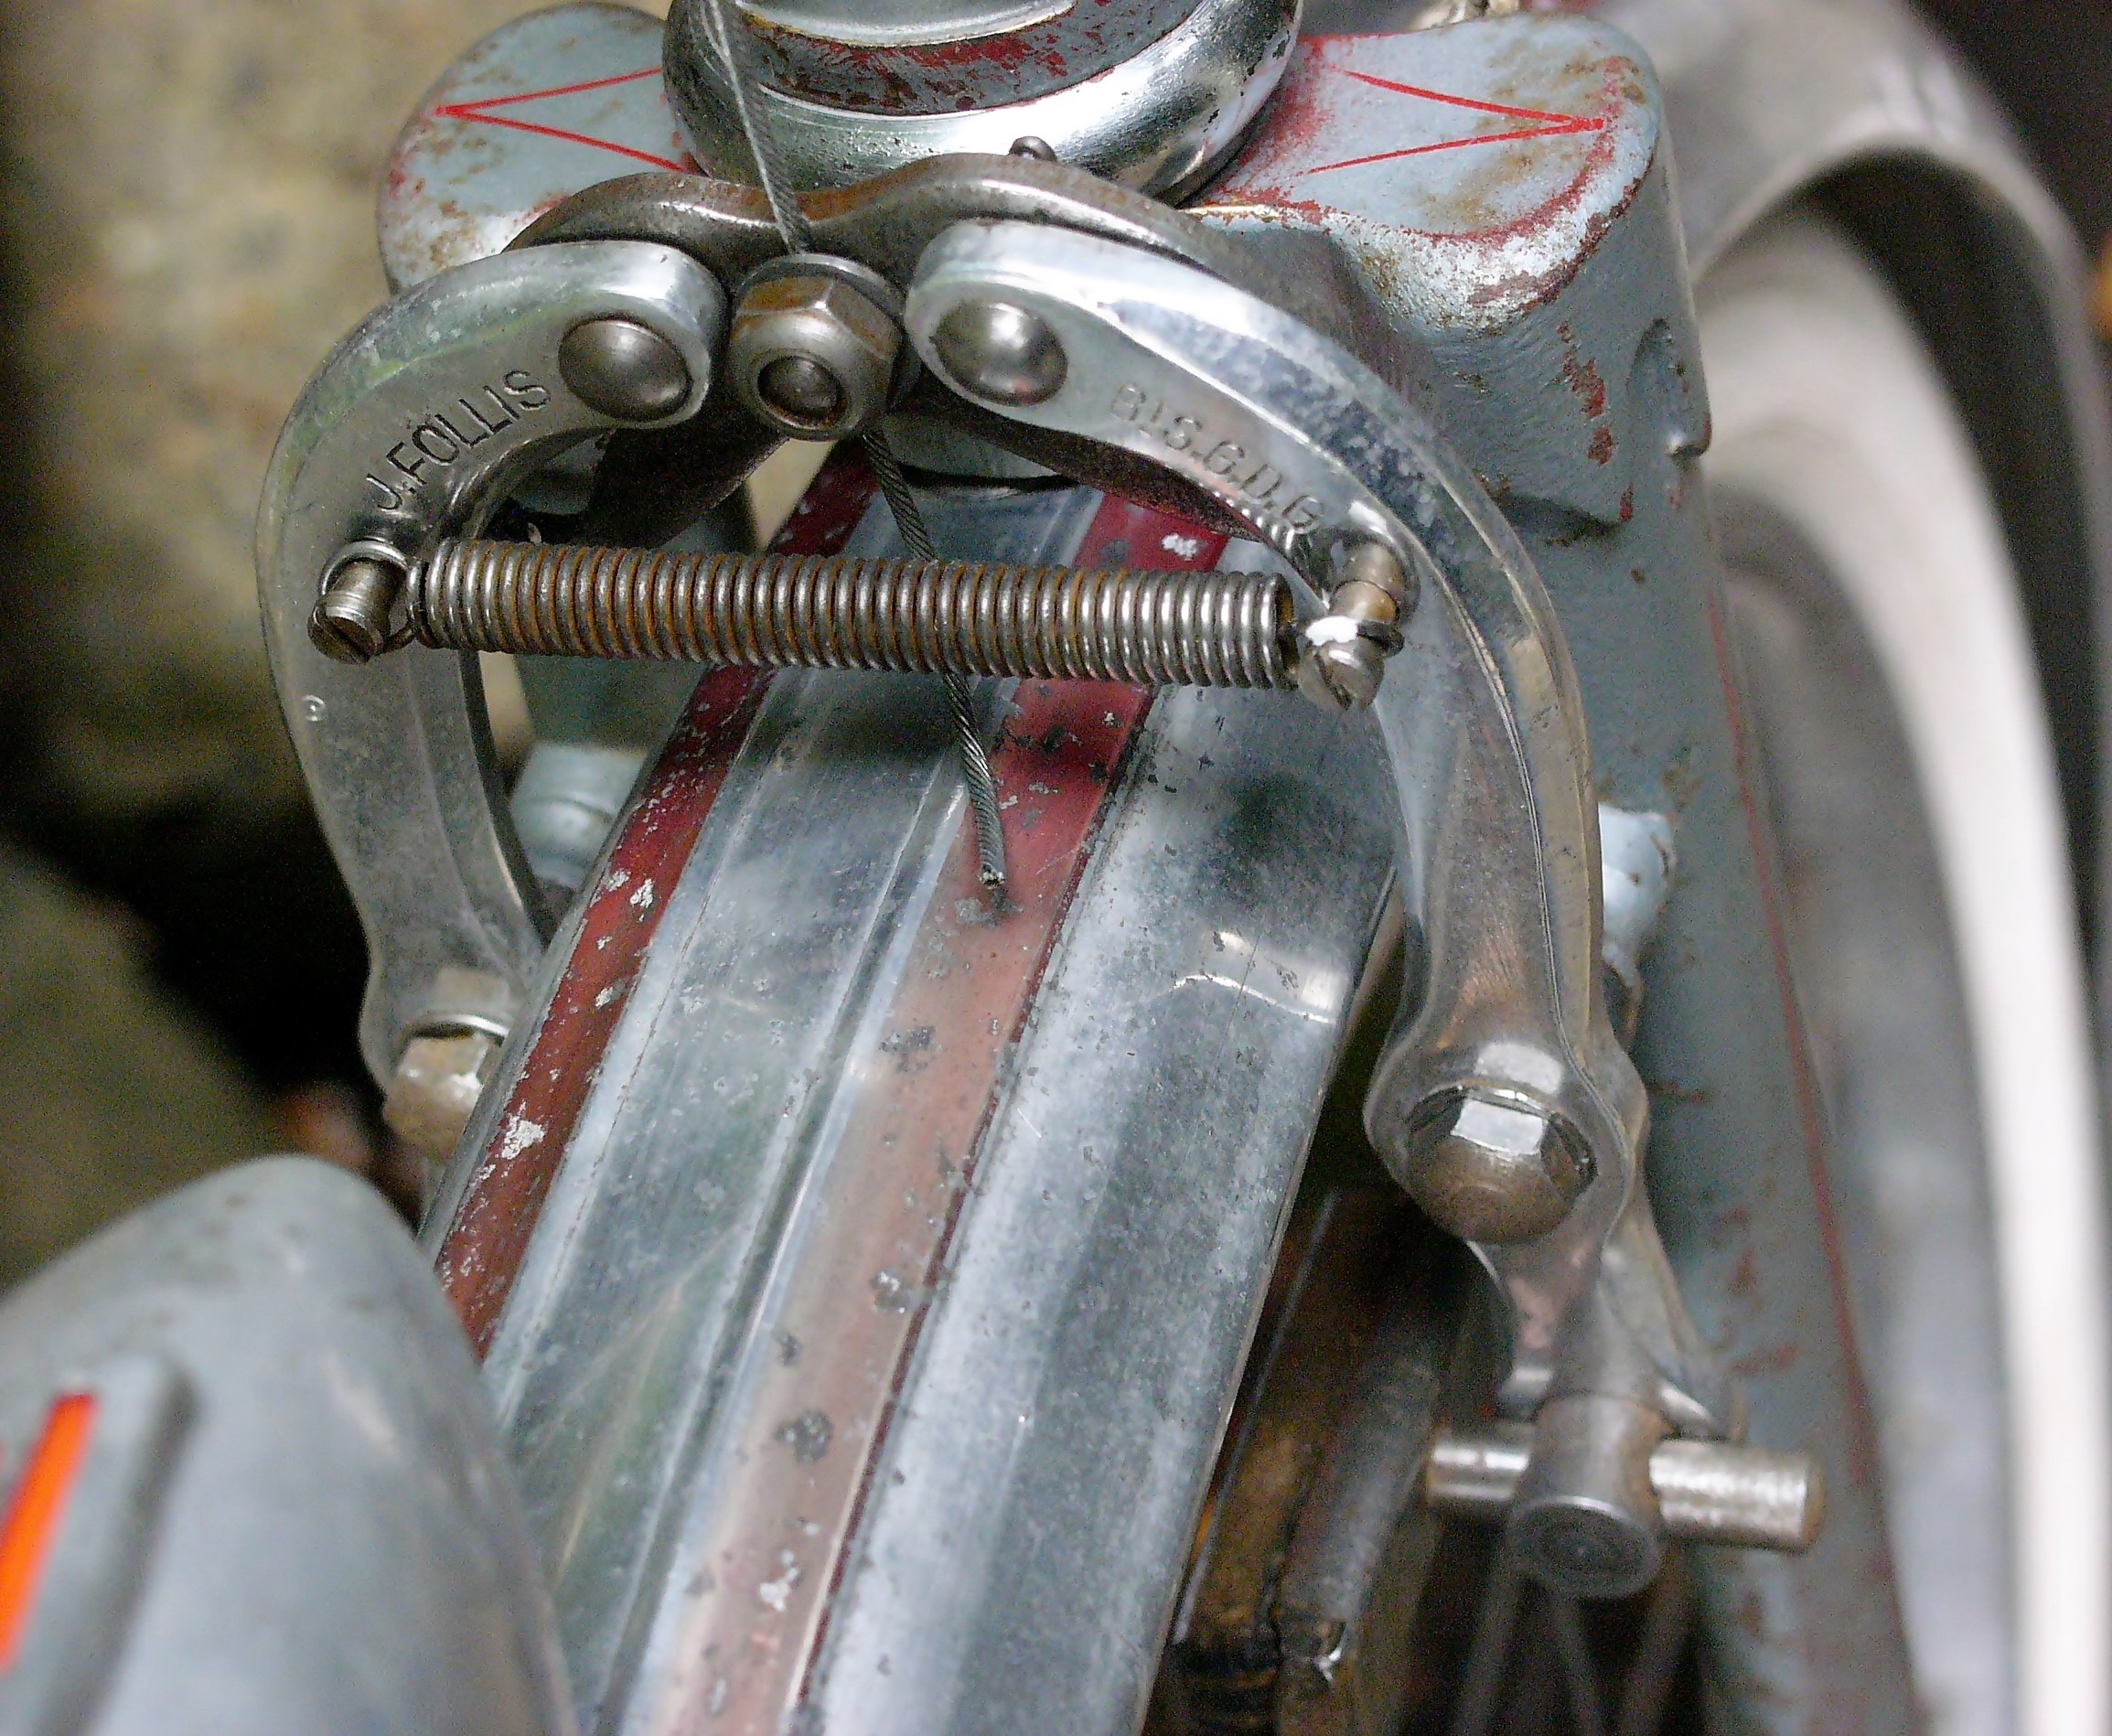 Setting up Centerpull Brakes | Restoring Vintage Bicycles from the